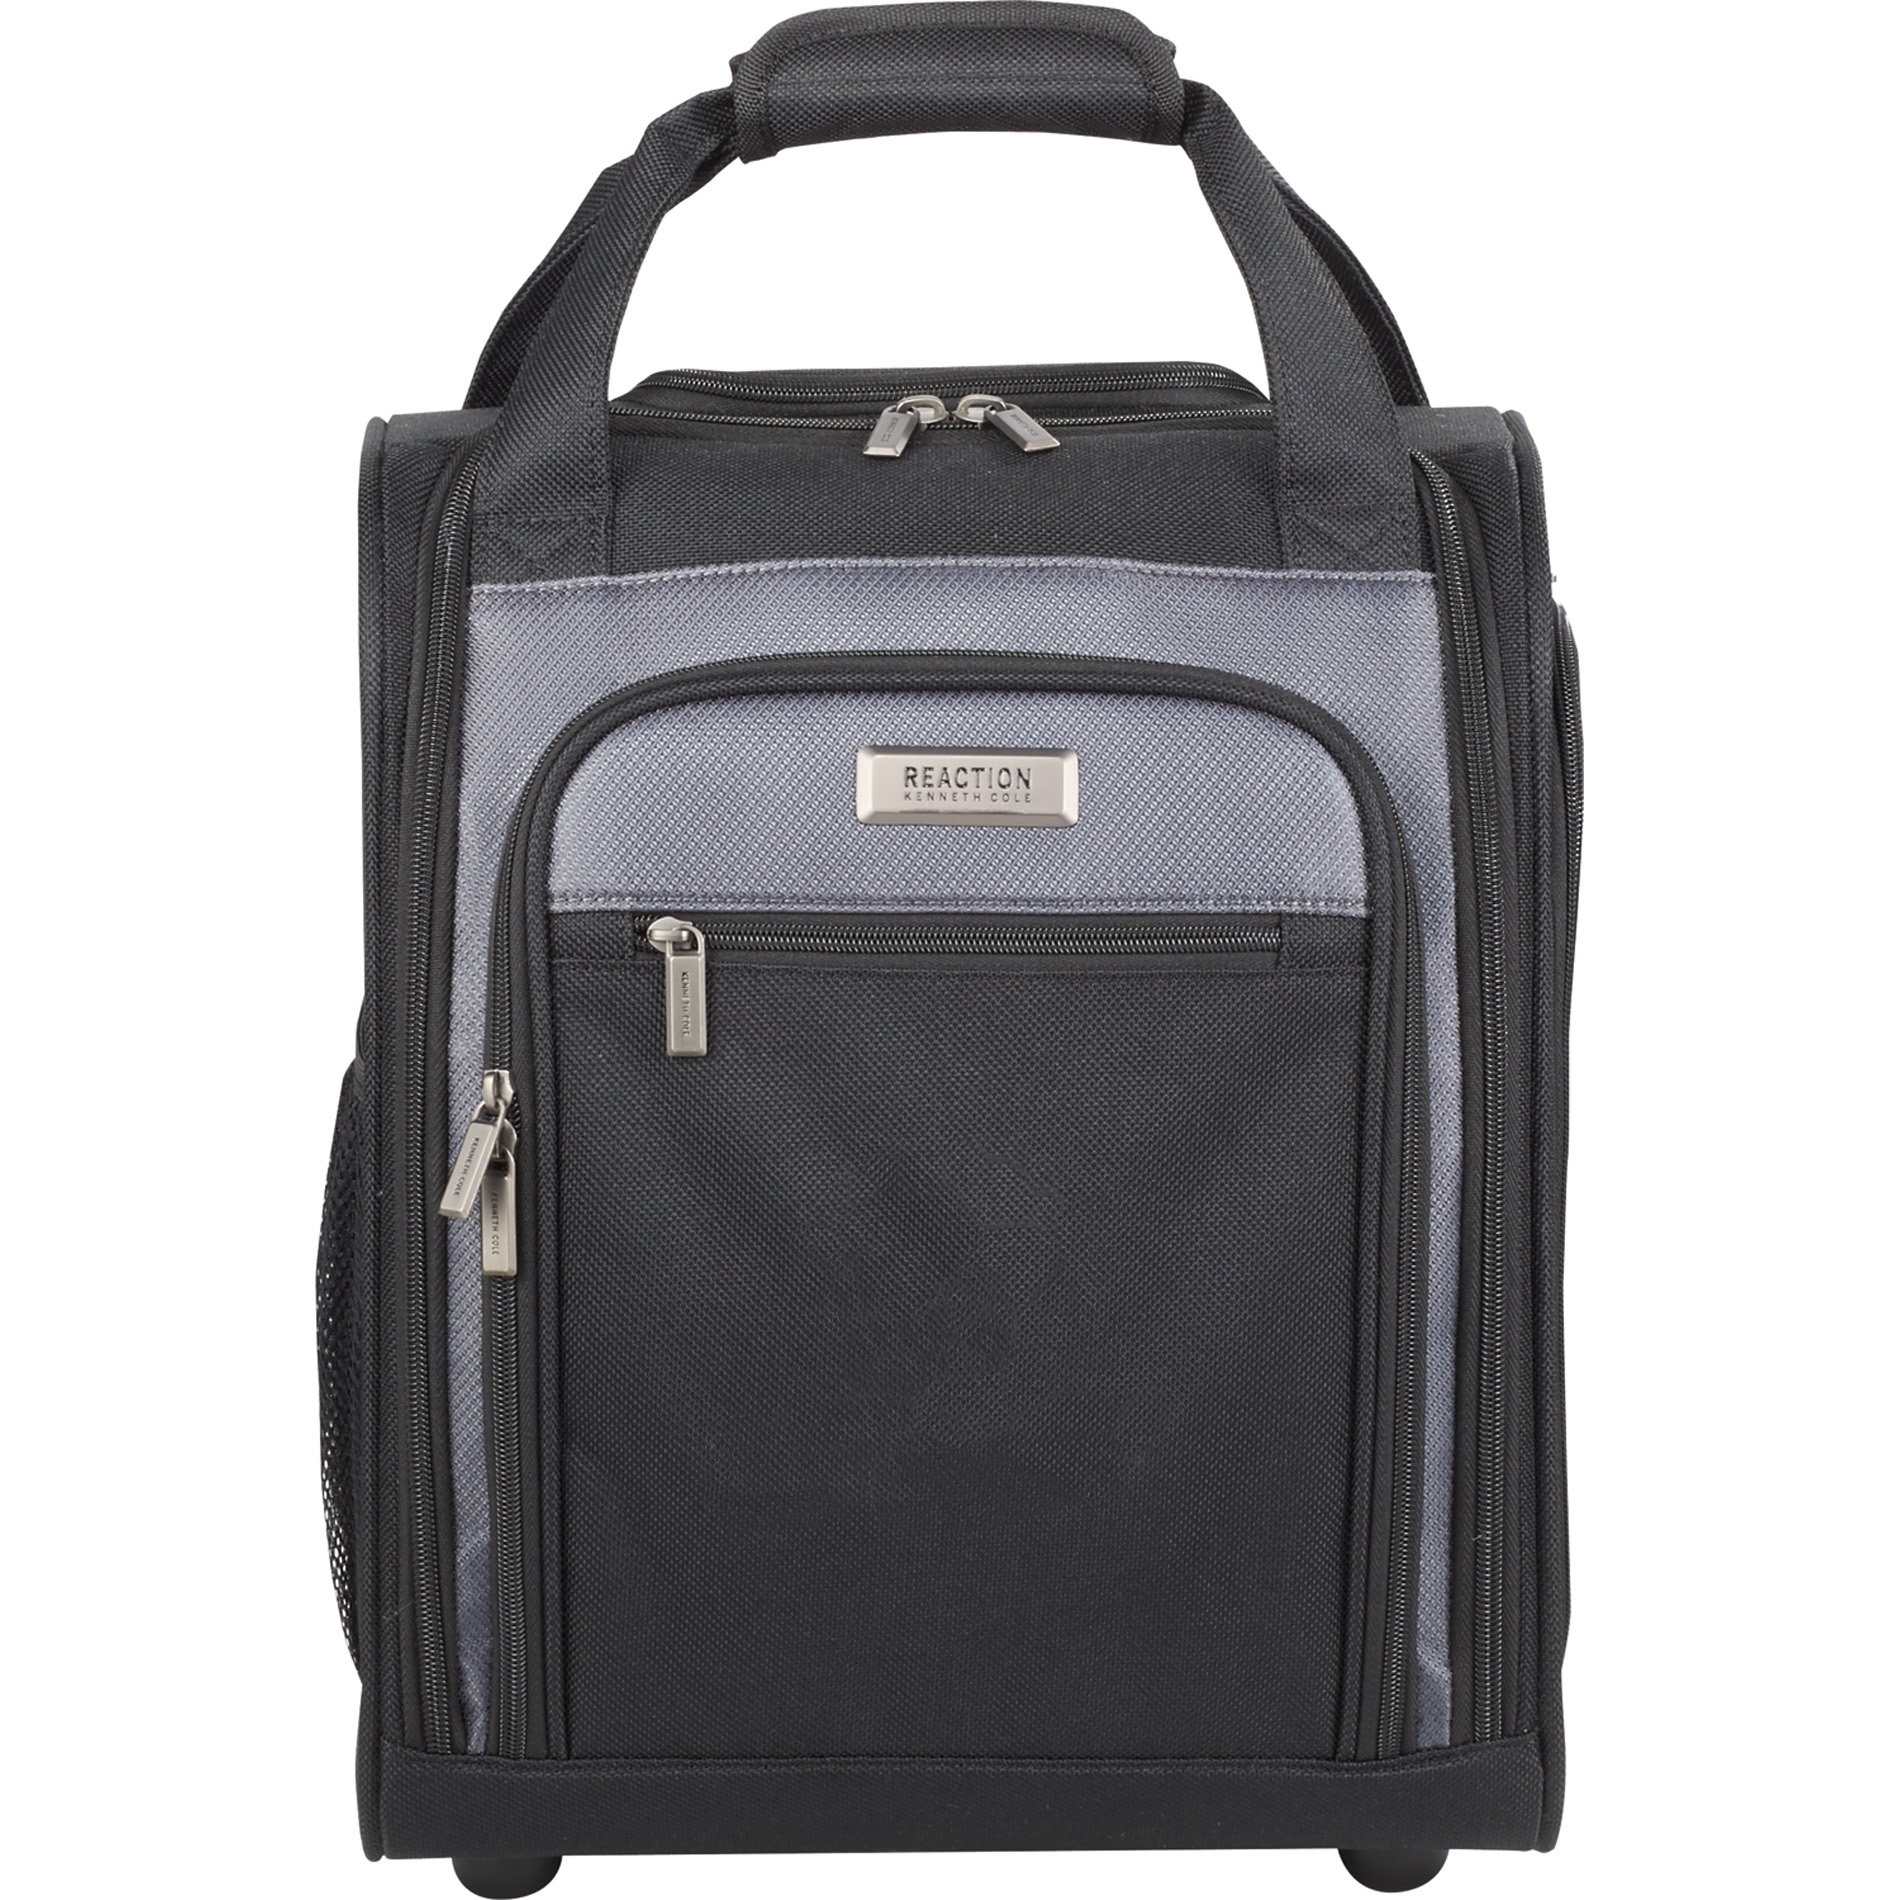 Kenneth Cole 9950-77 - Underseater Luggage